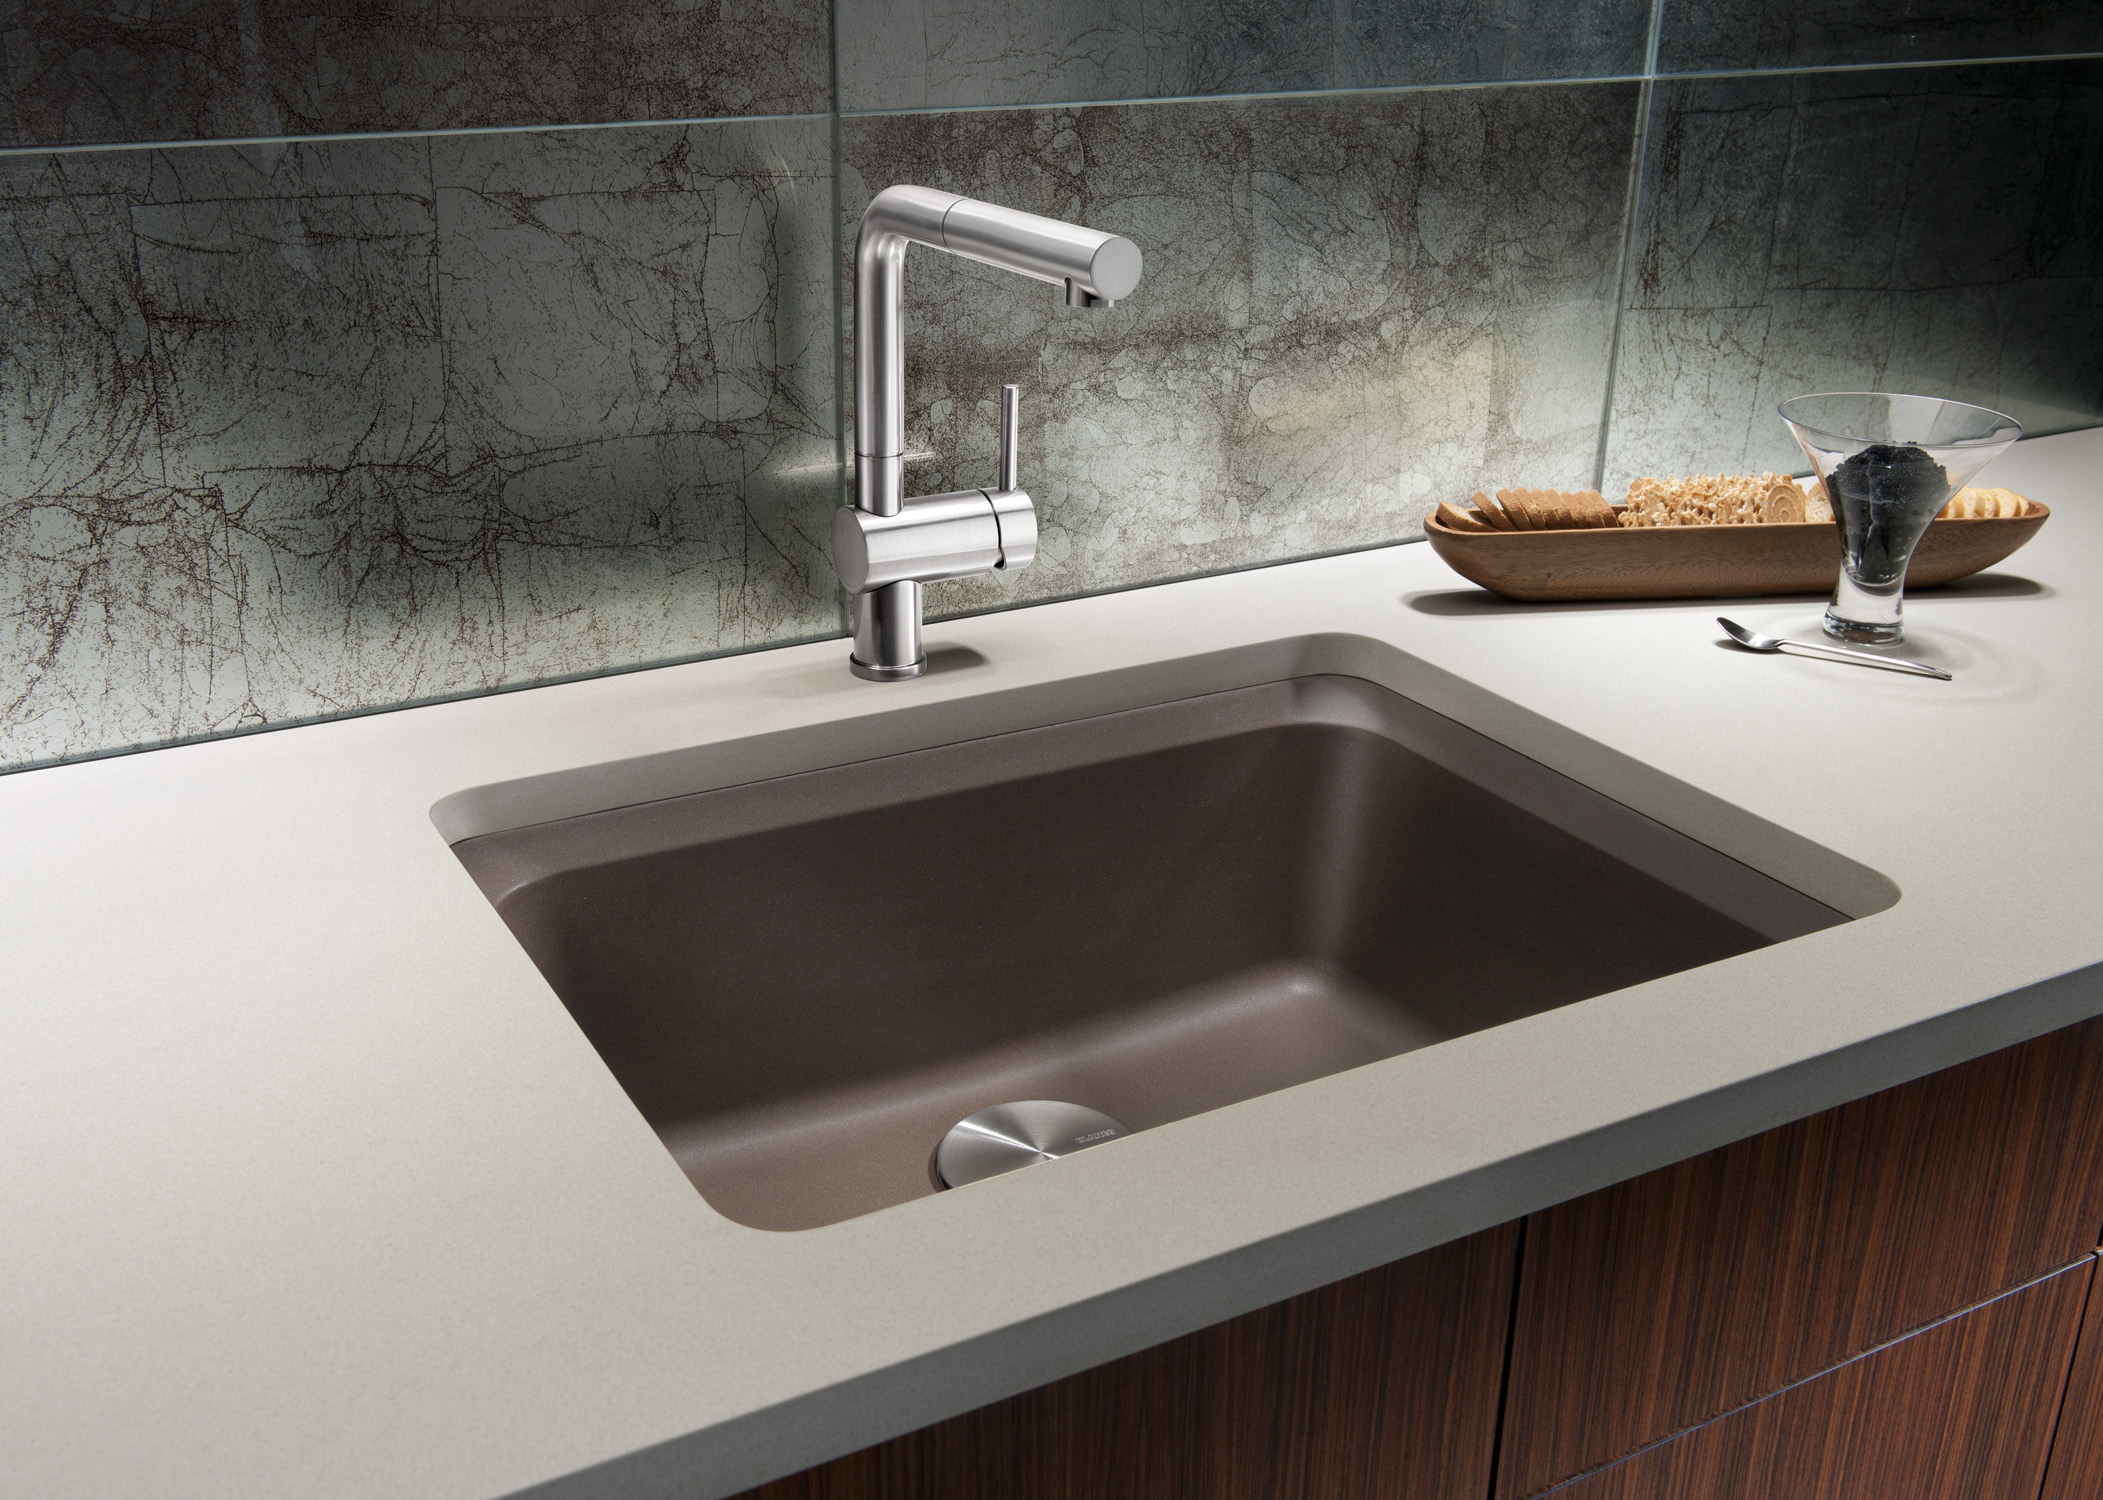 Silgranit Sink : blanco silgranit ii vision kitchen sink the new blanco silgranit ii ...